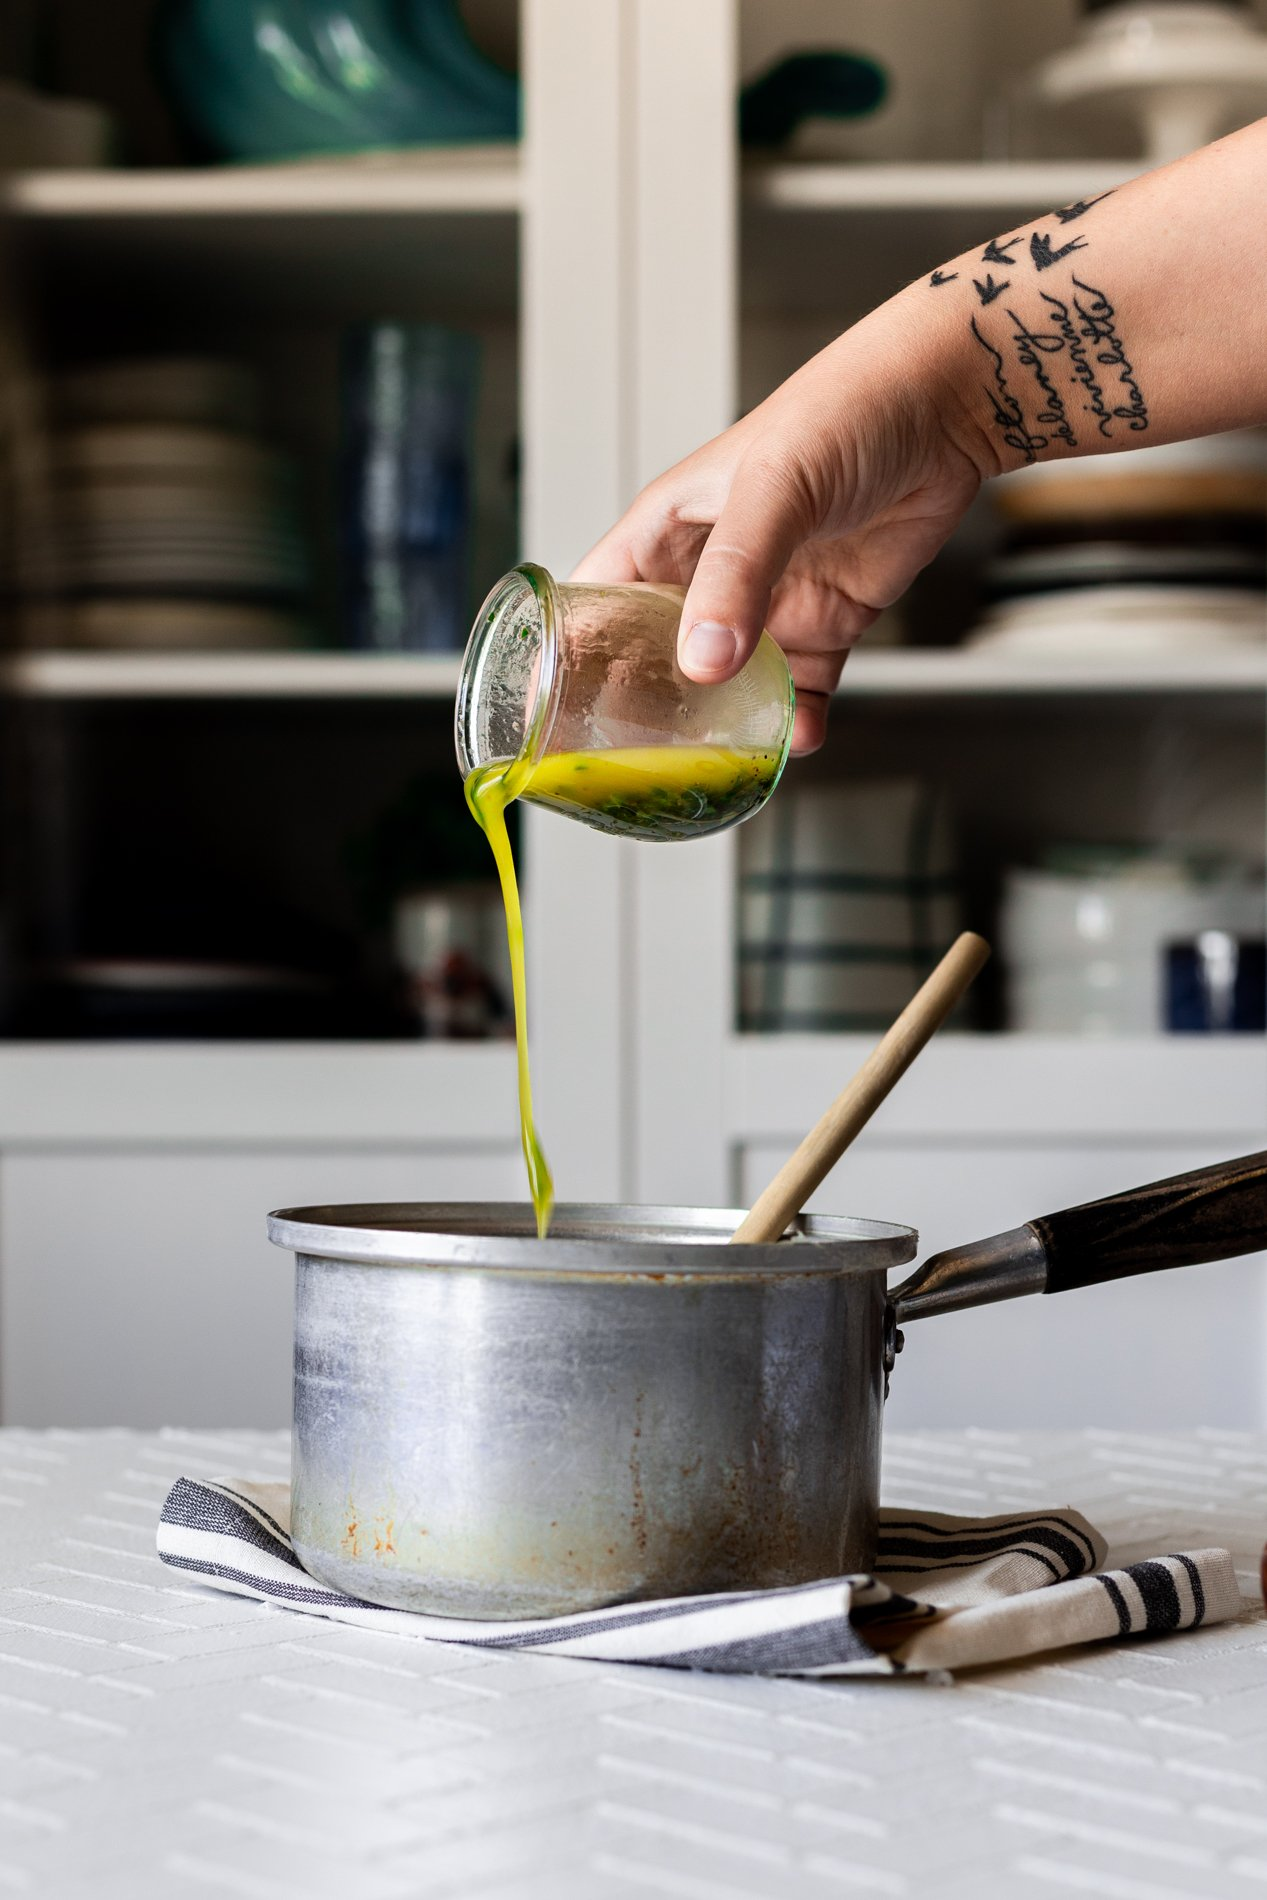 side view of a jar of lemon basil vinaigrette being poured into a pot of cooked couscous by hand